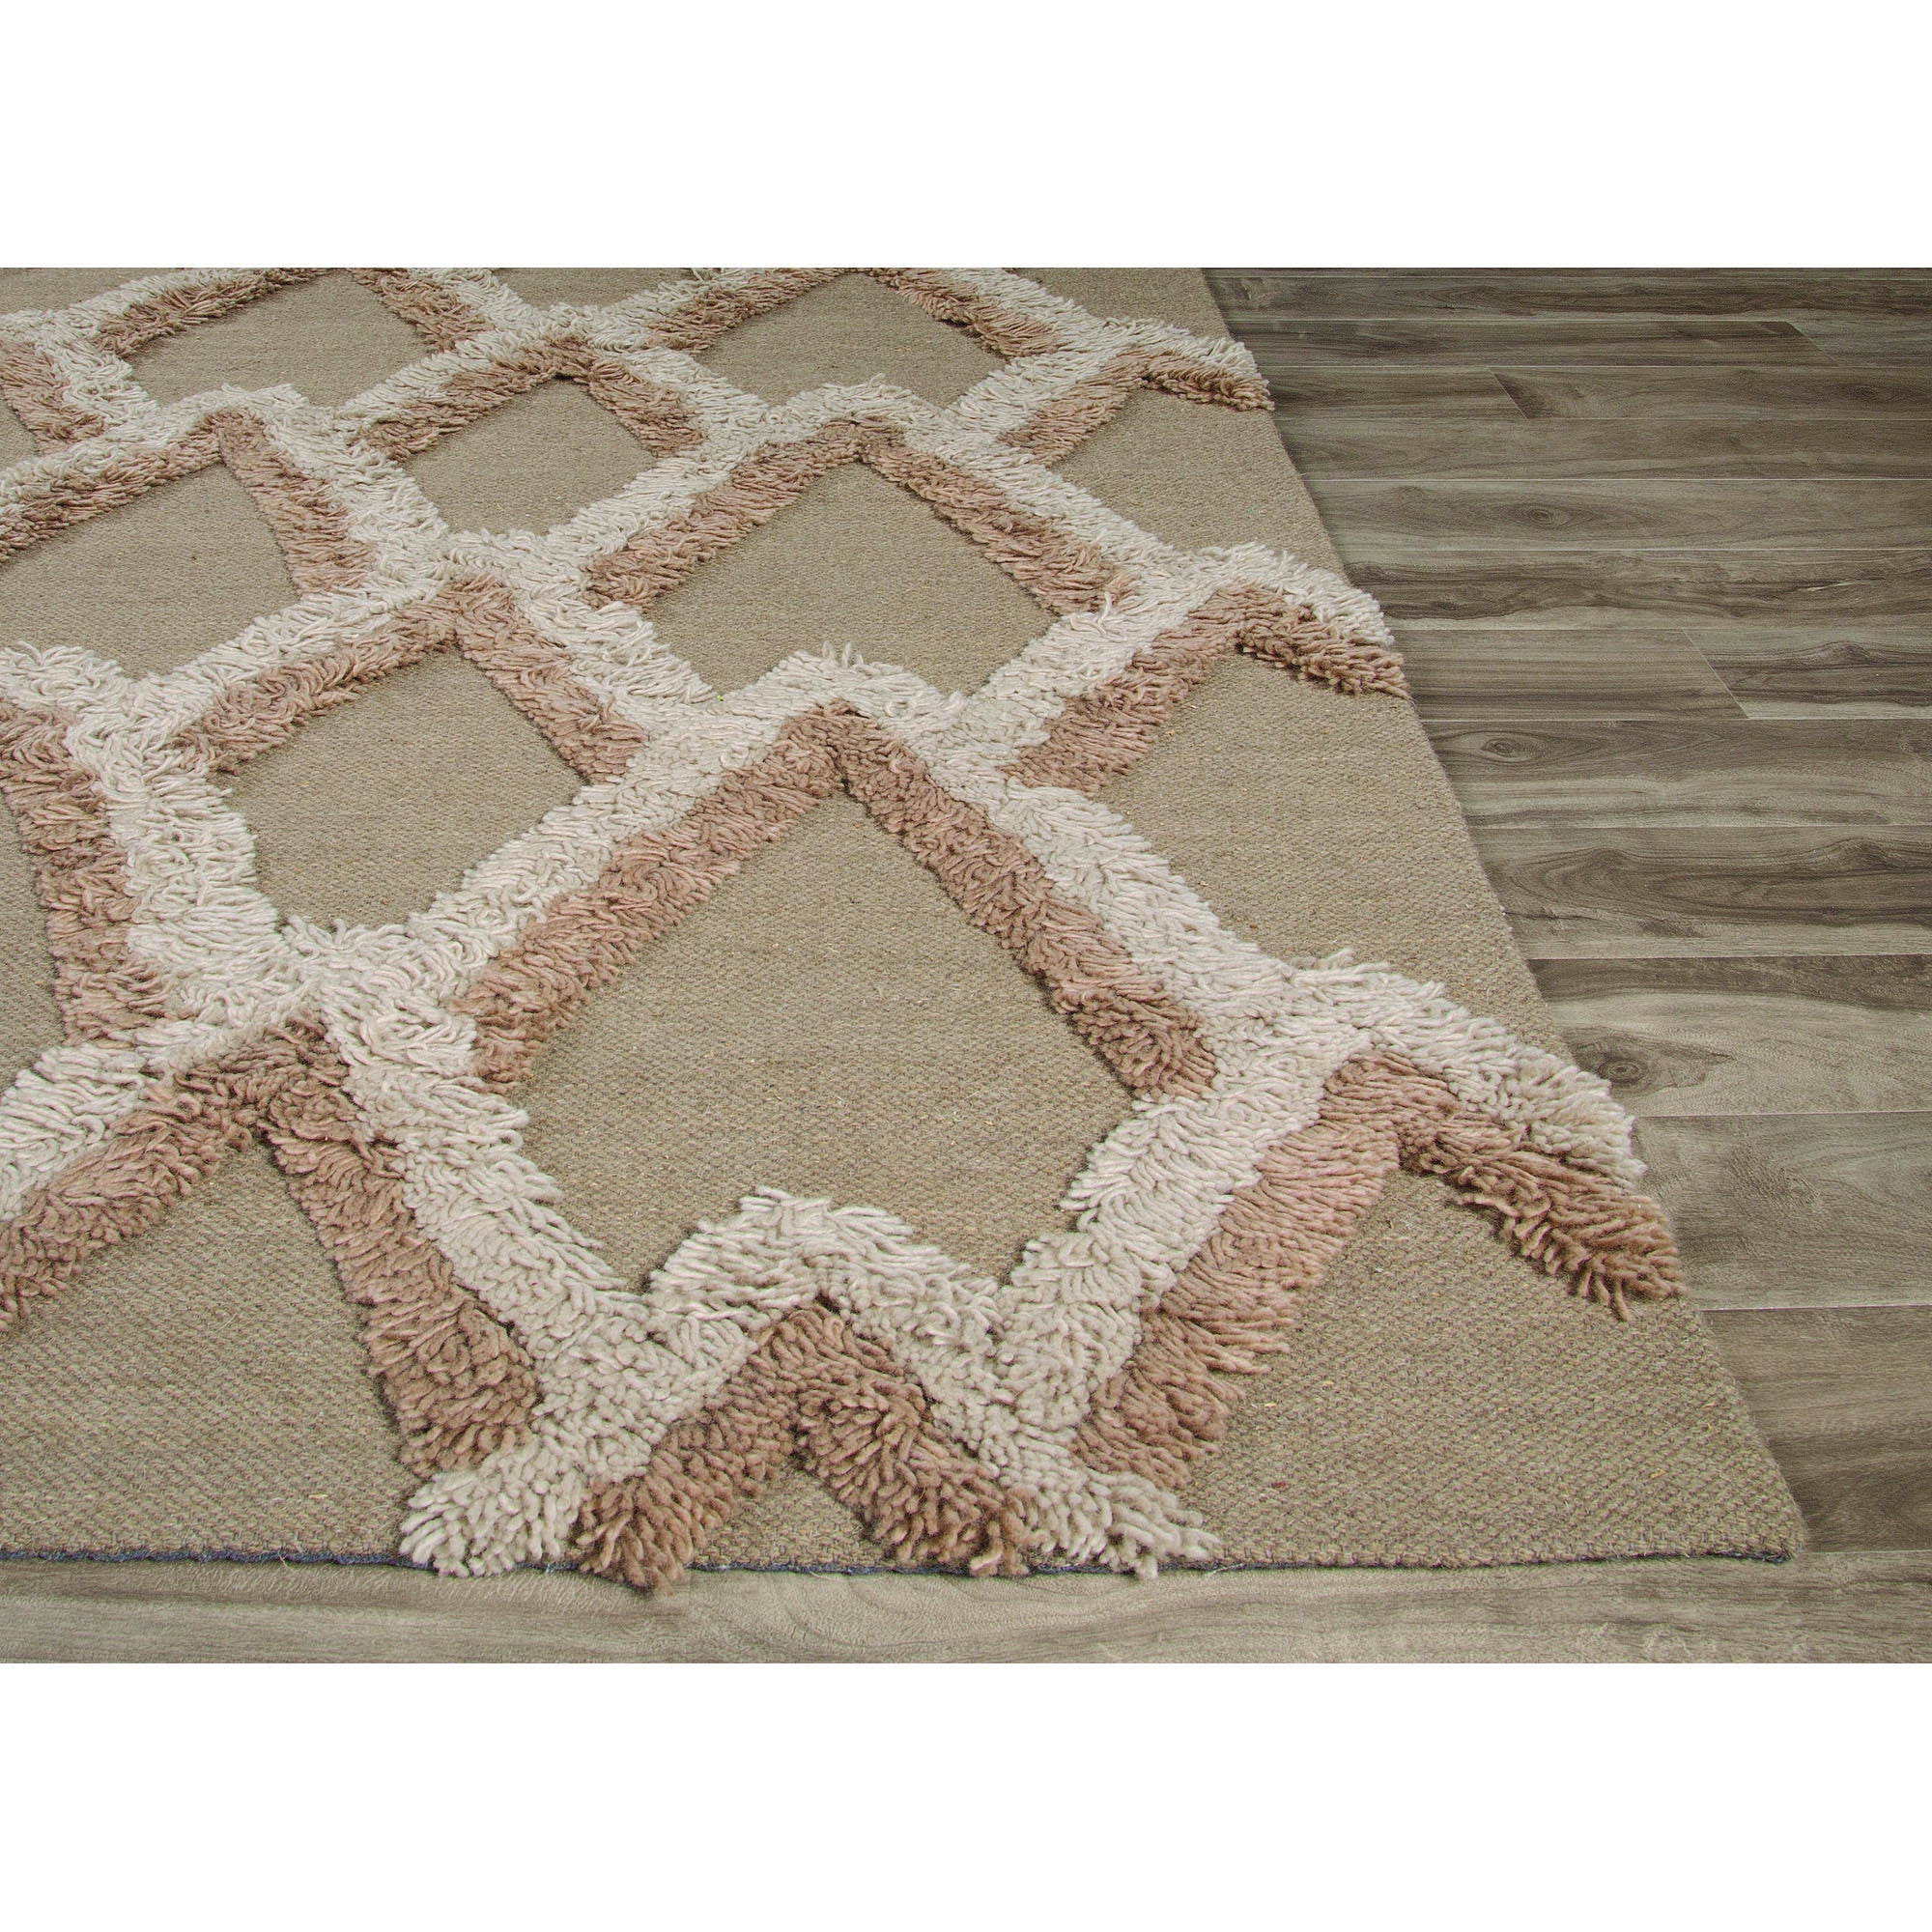 Jaipur rugs modern geometric pattern neutral tan wool area for Modern wool area rugs